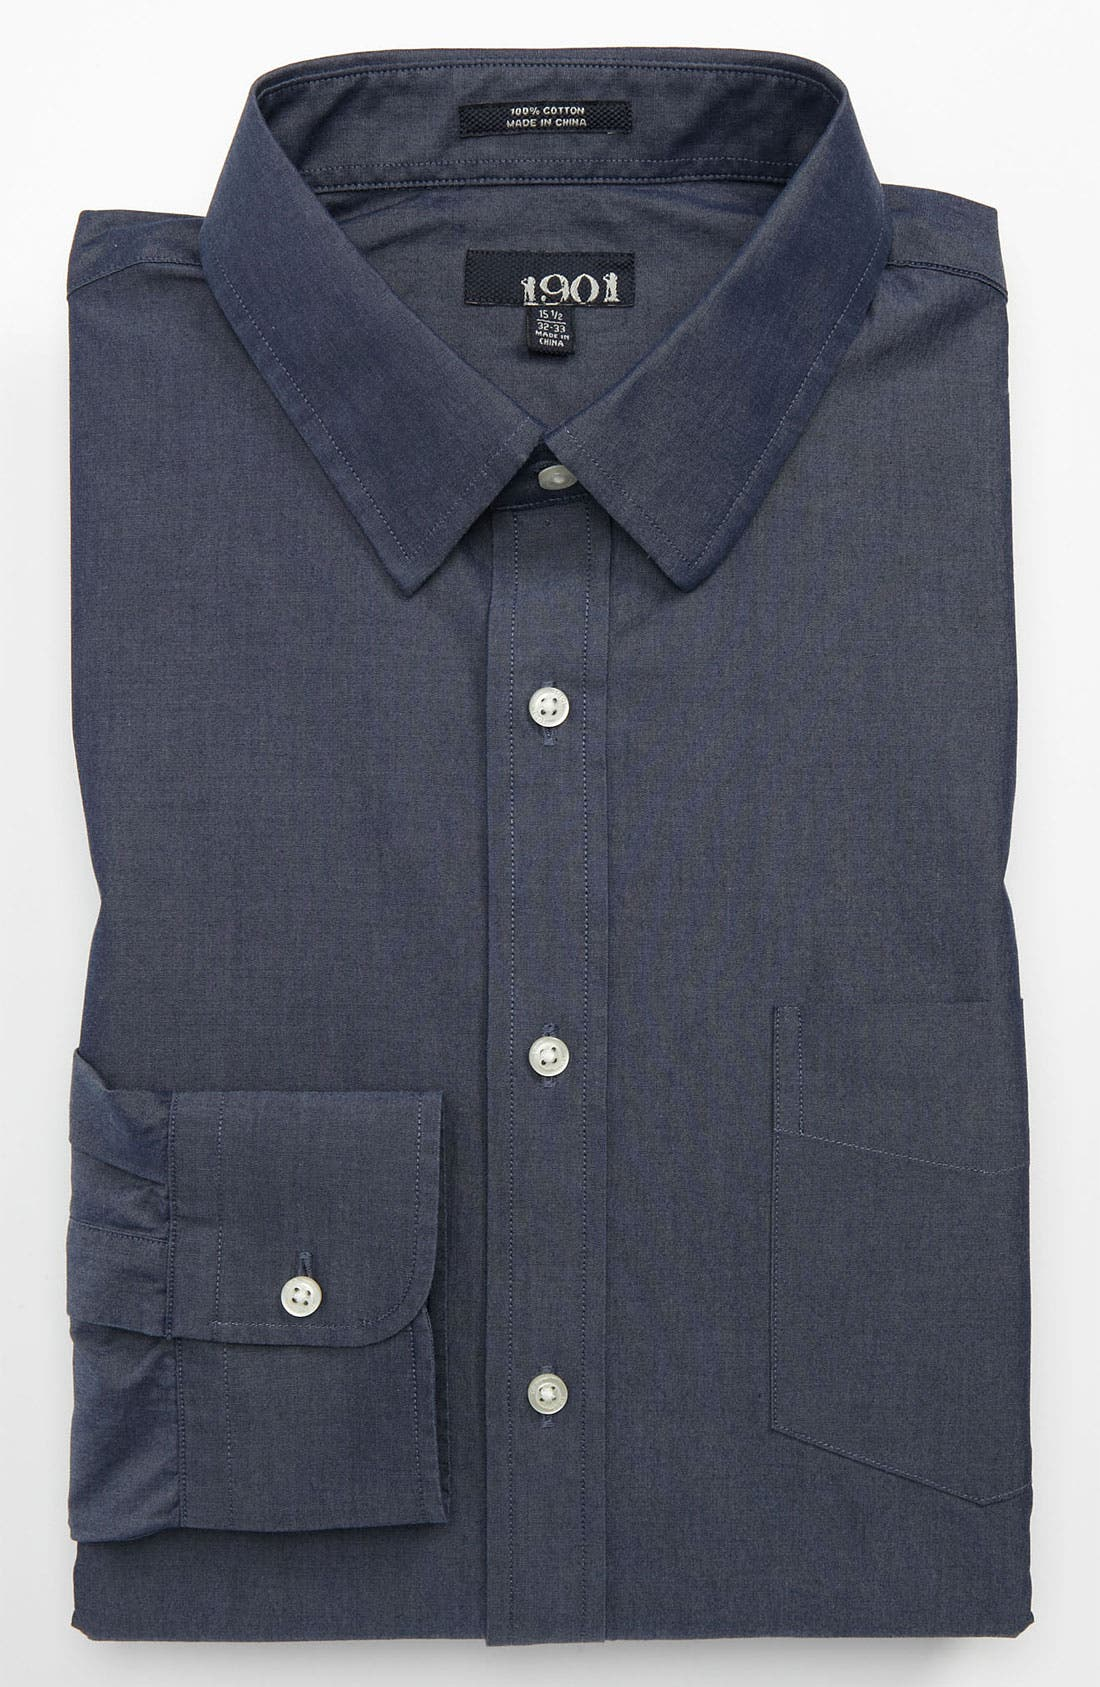 Main Image - 1901 Trim Fit Dress Shirt